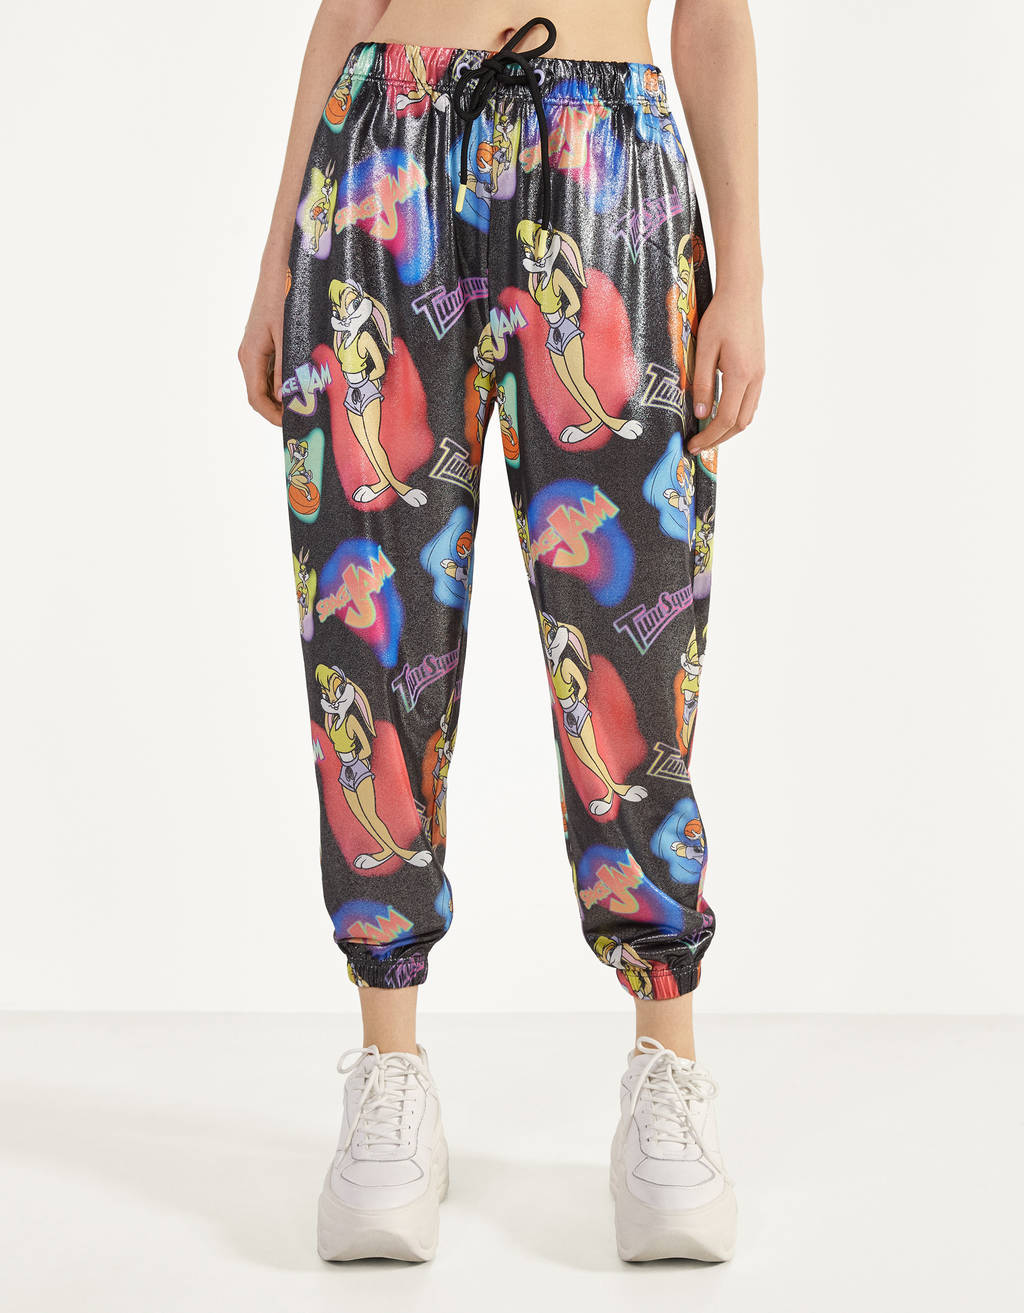 Space Jam x Bershka jogging trousers